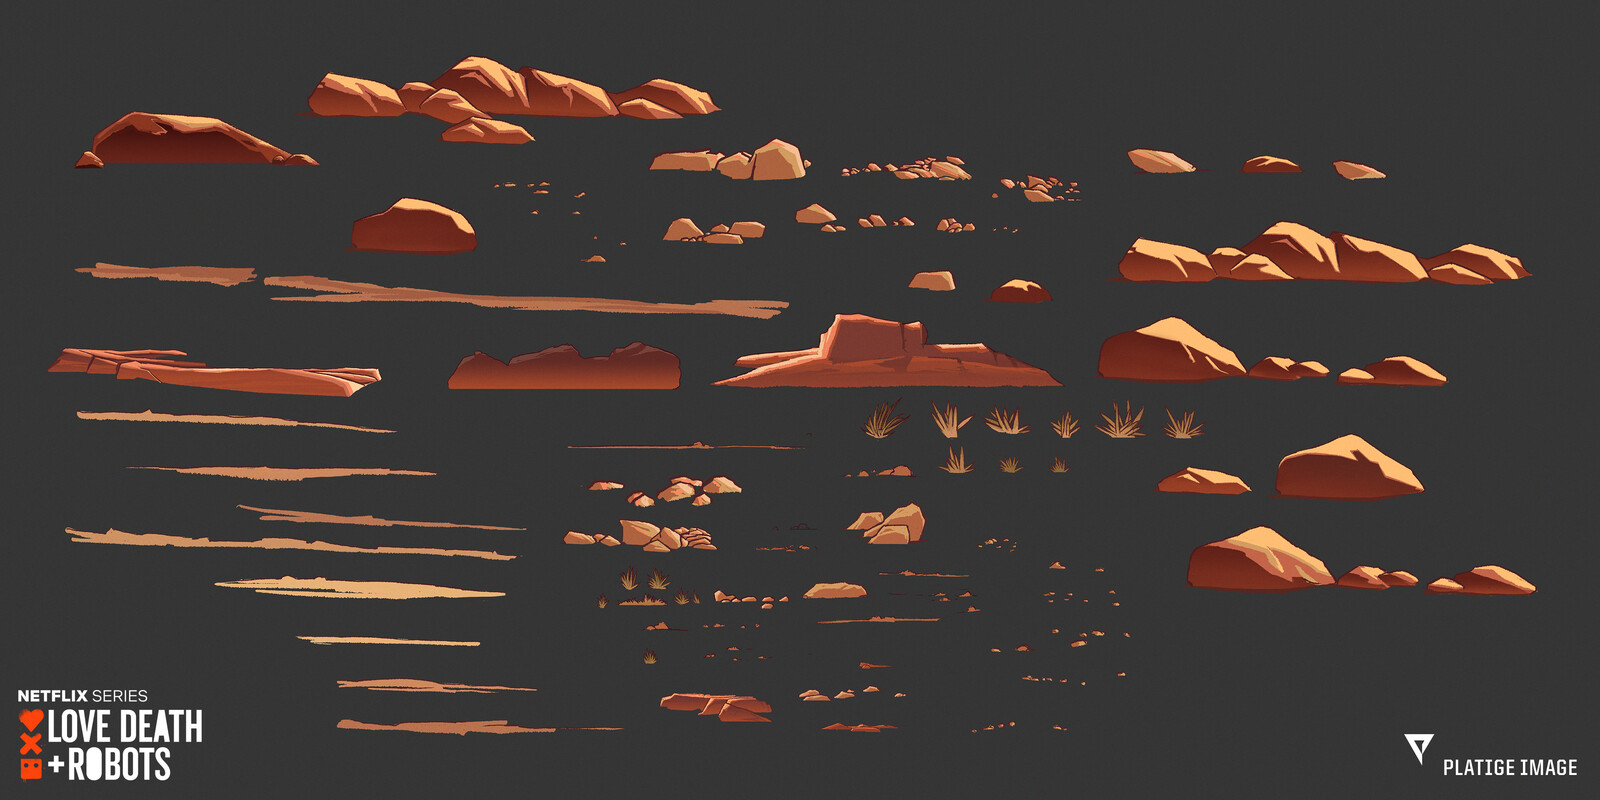 Some of the additional desert assets that were used in various shots.